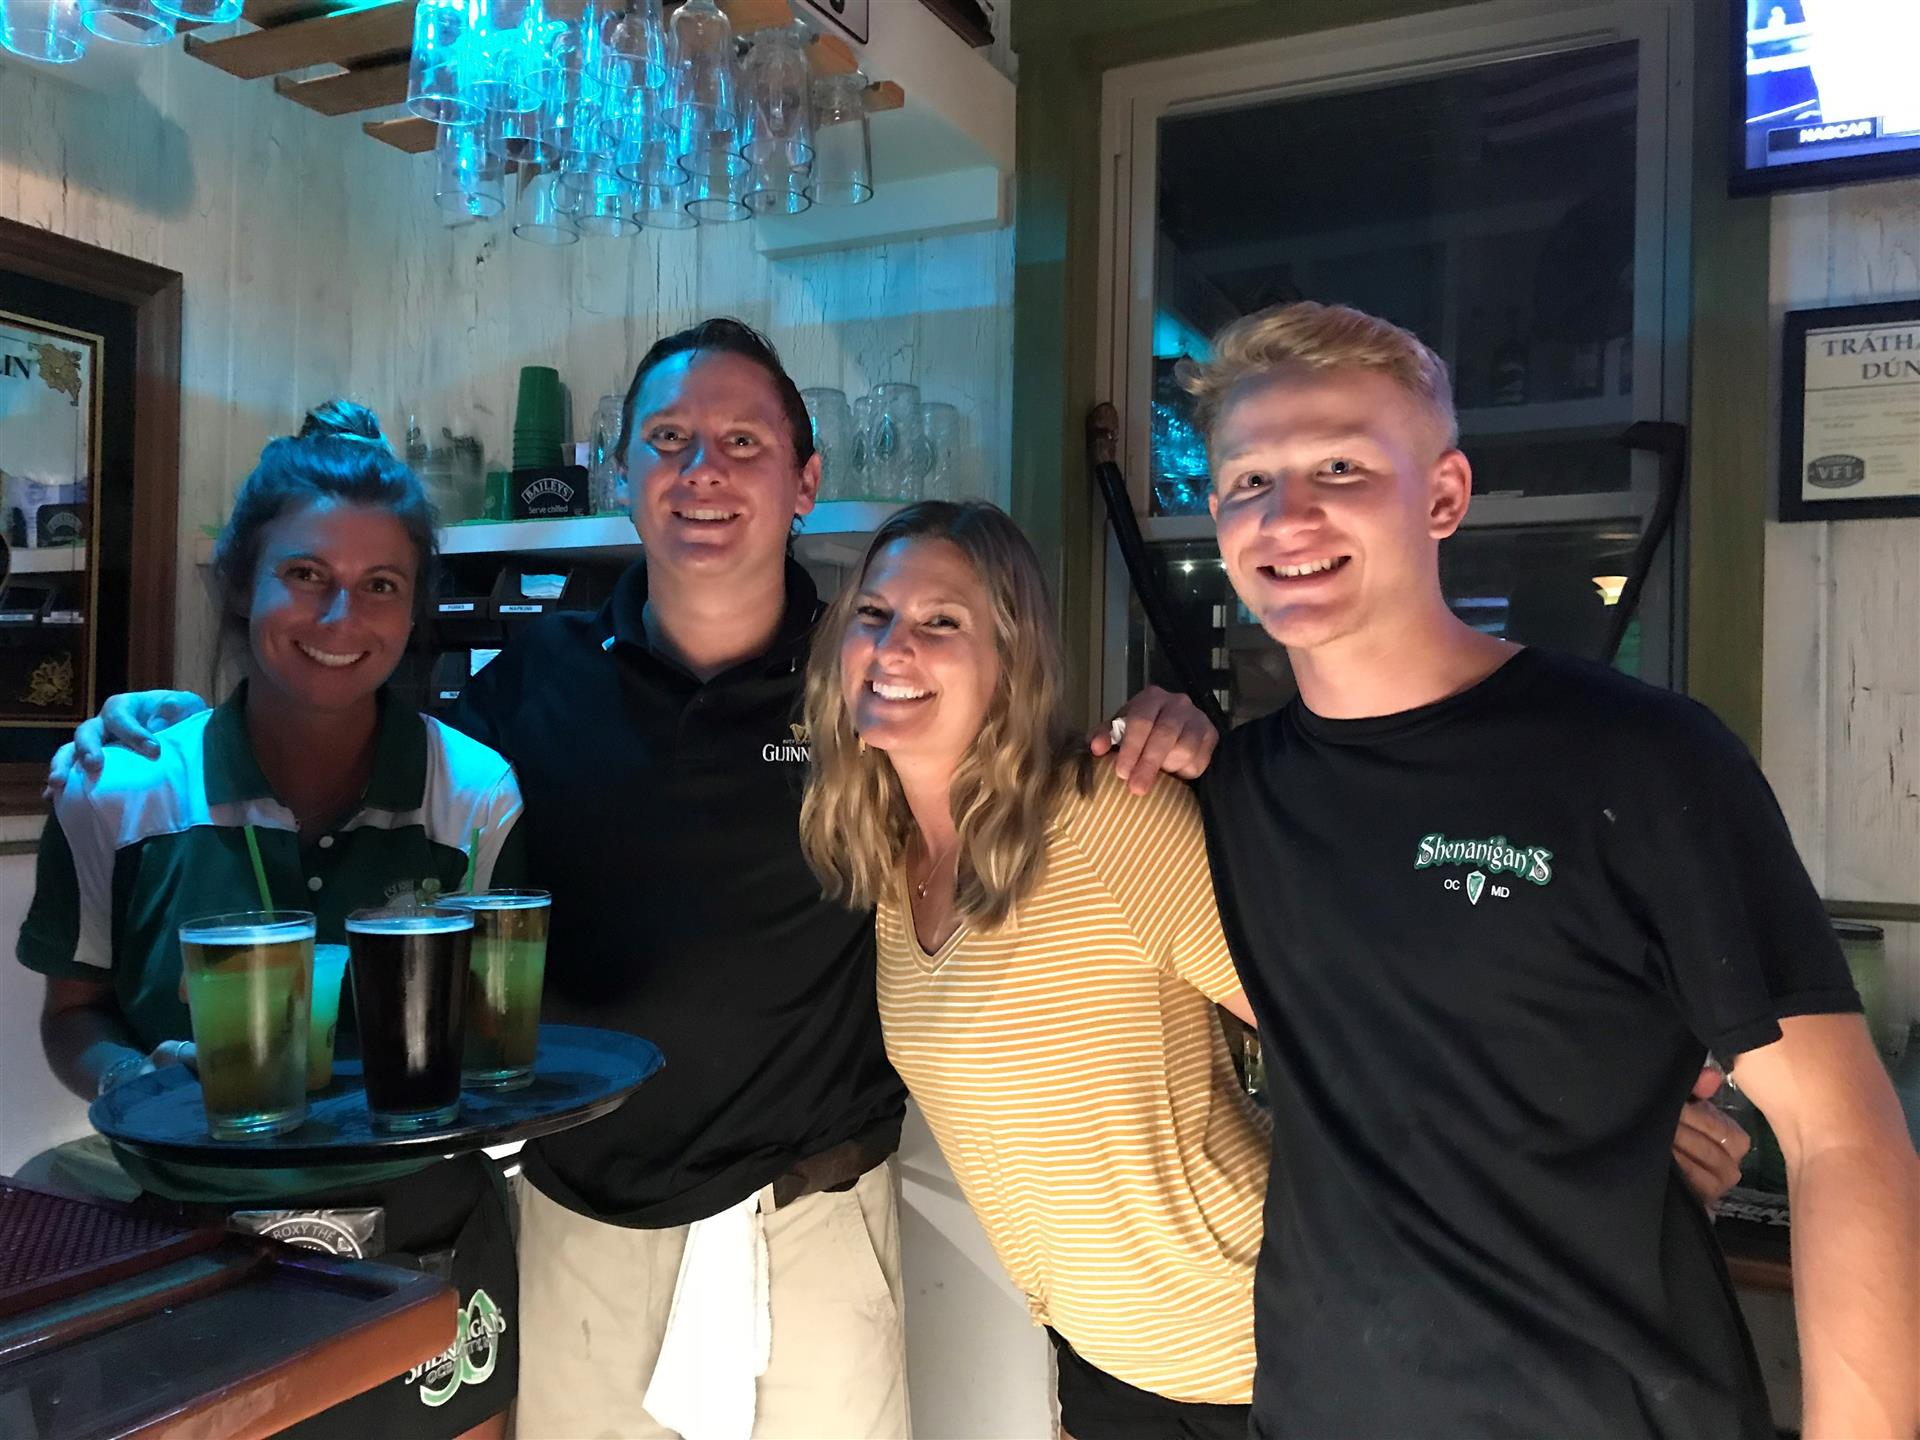 Employees smiling and working at the bar